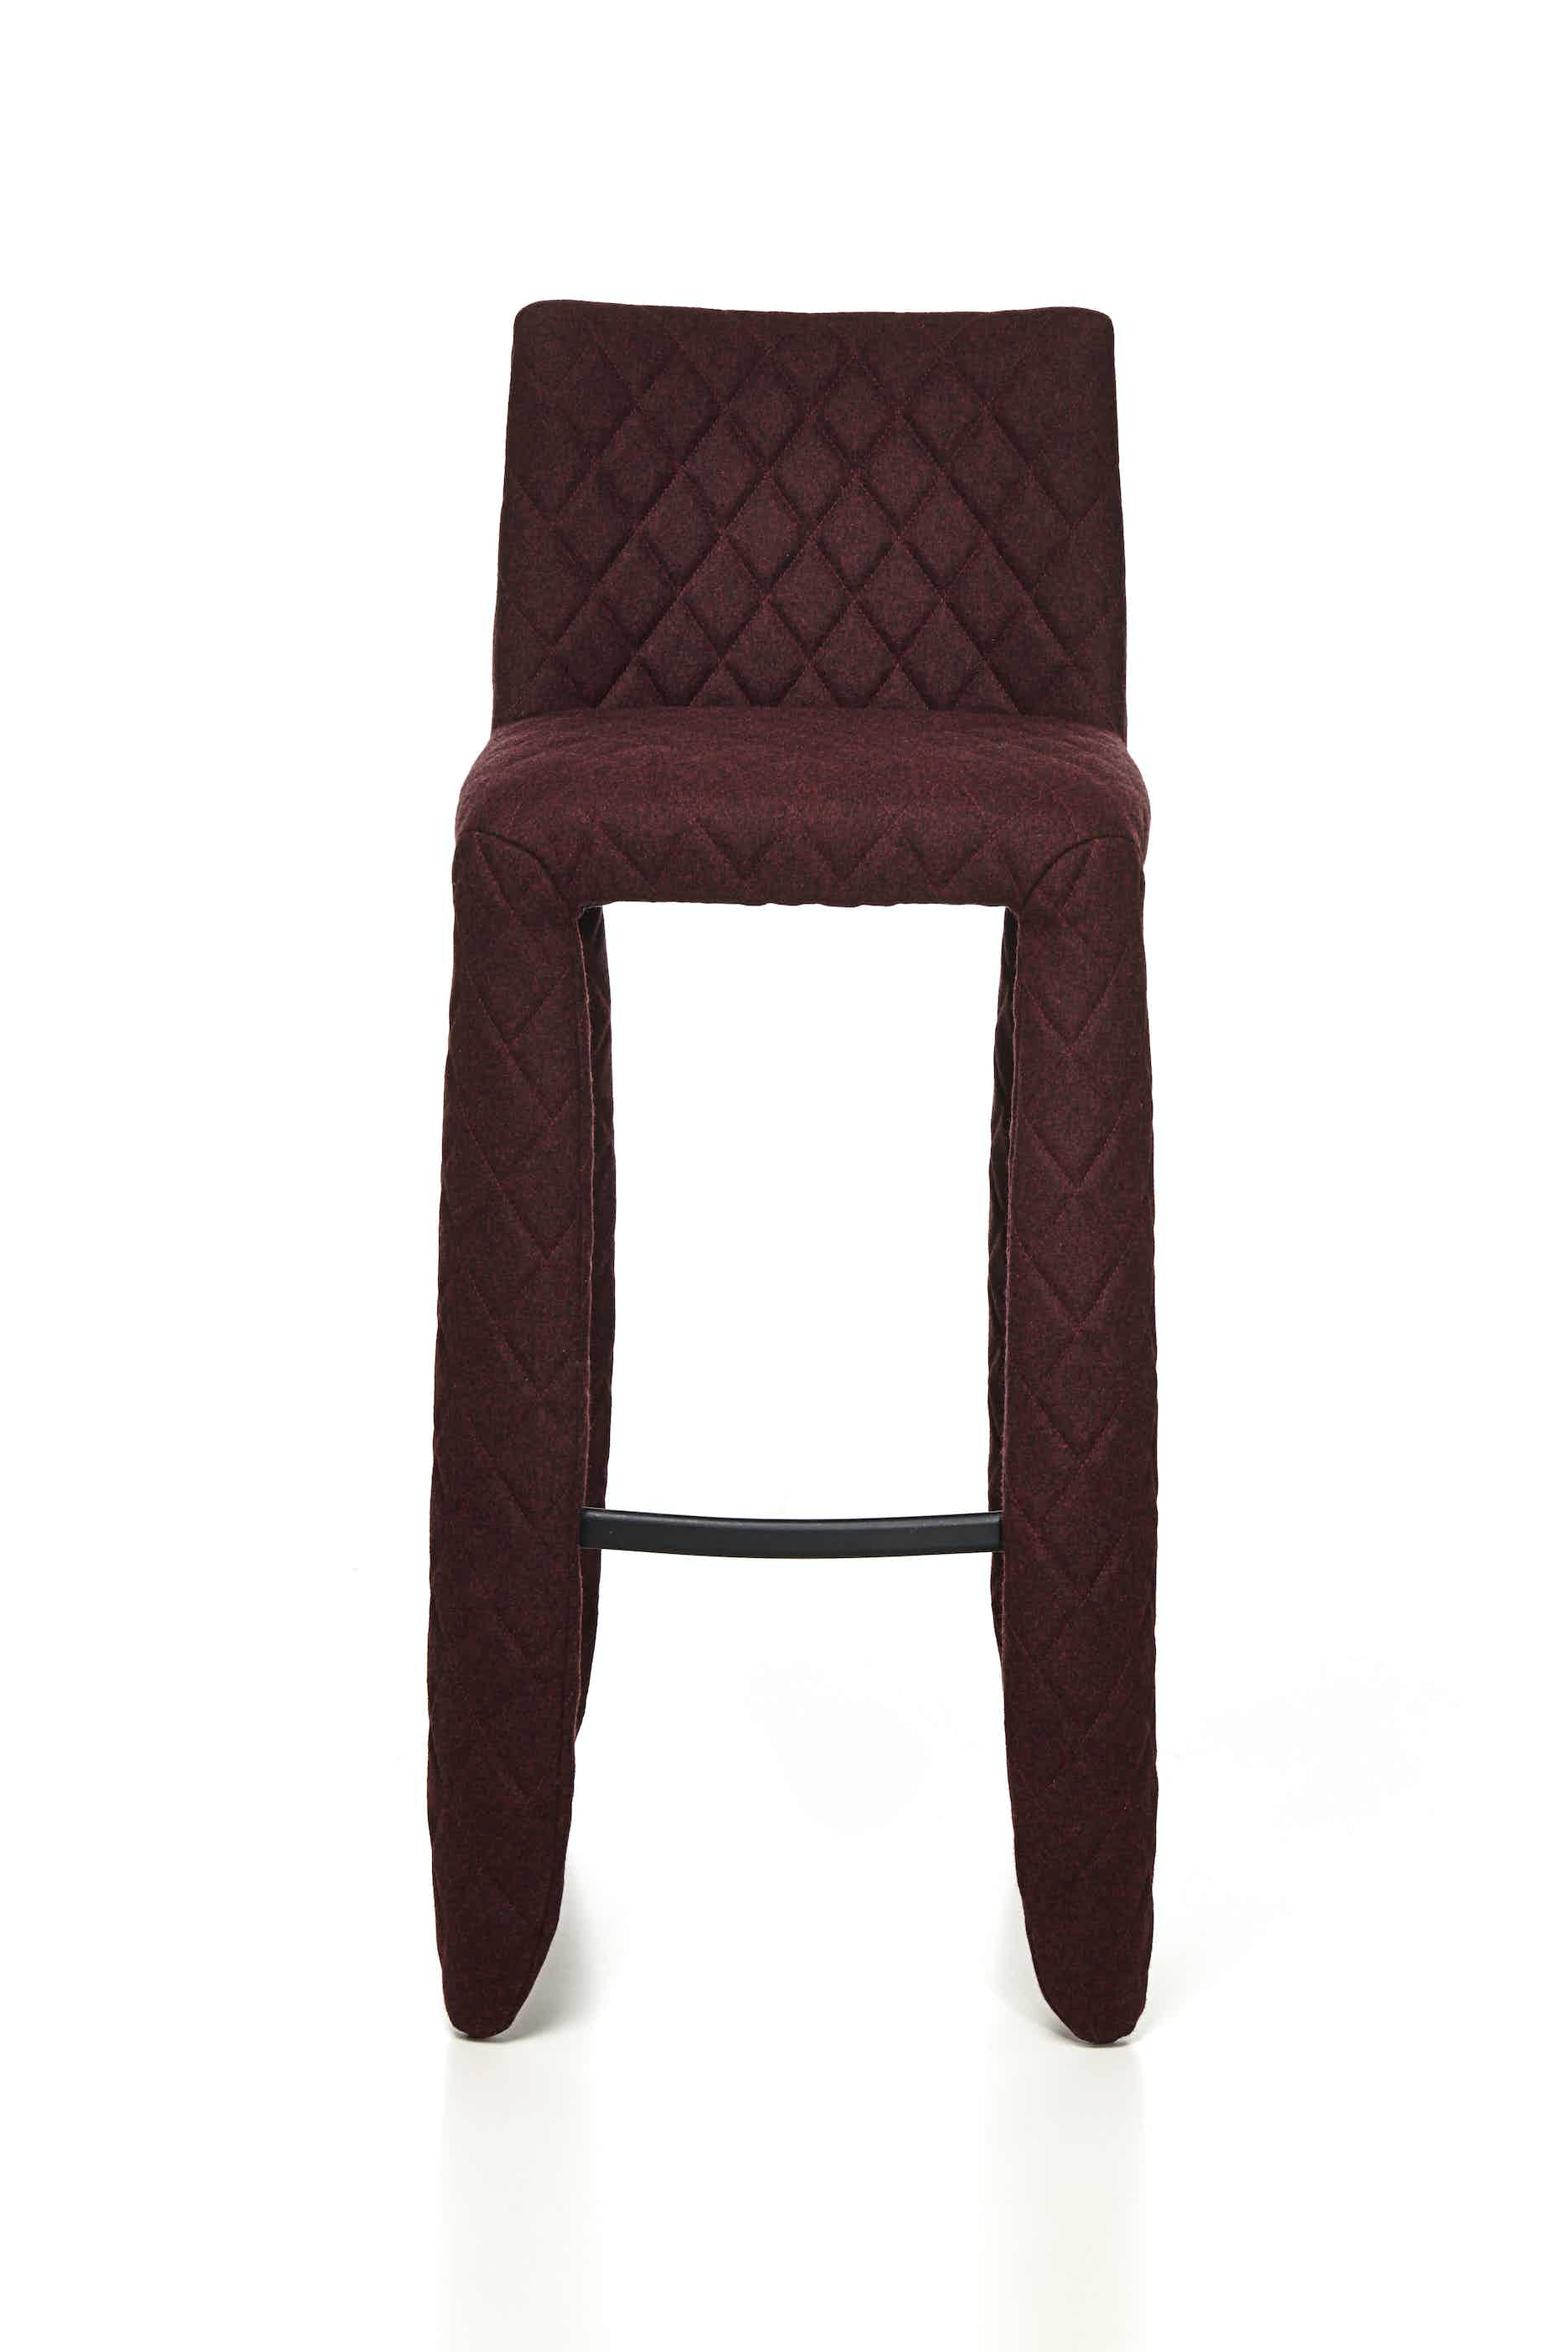 Moooi monster bar stool divina melange front haute living